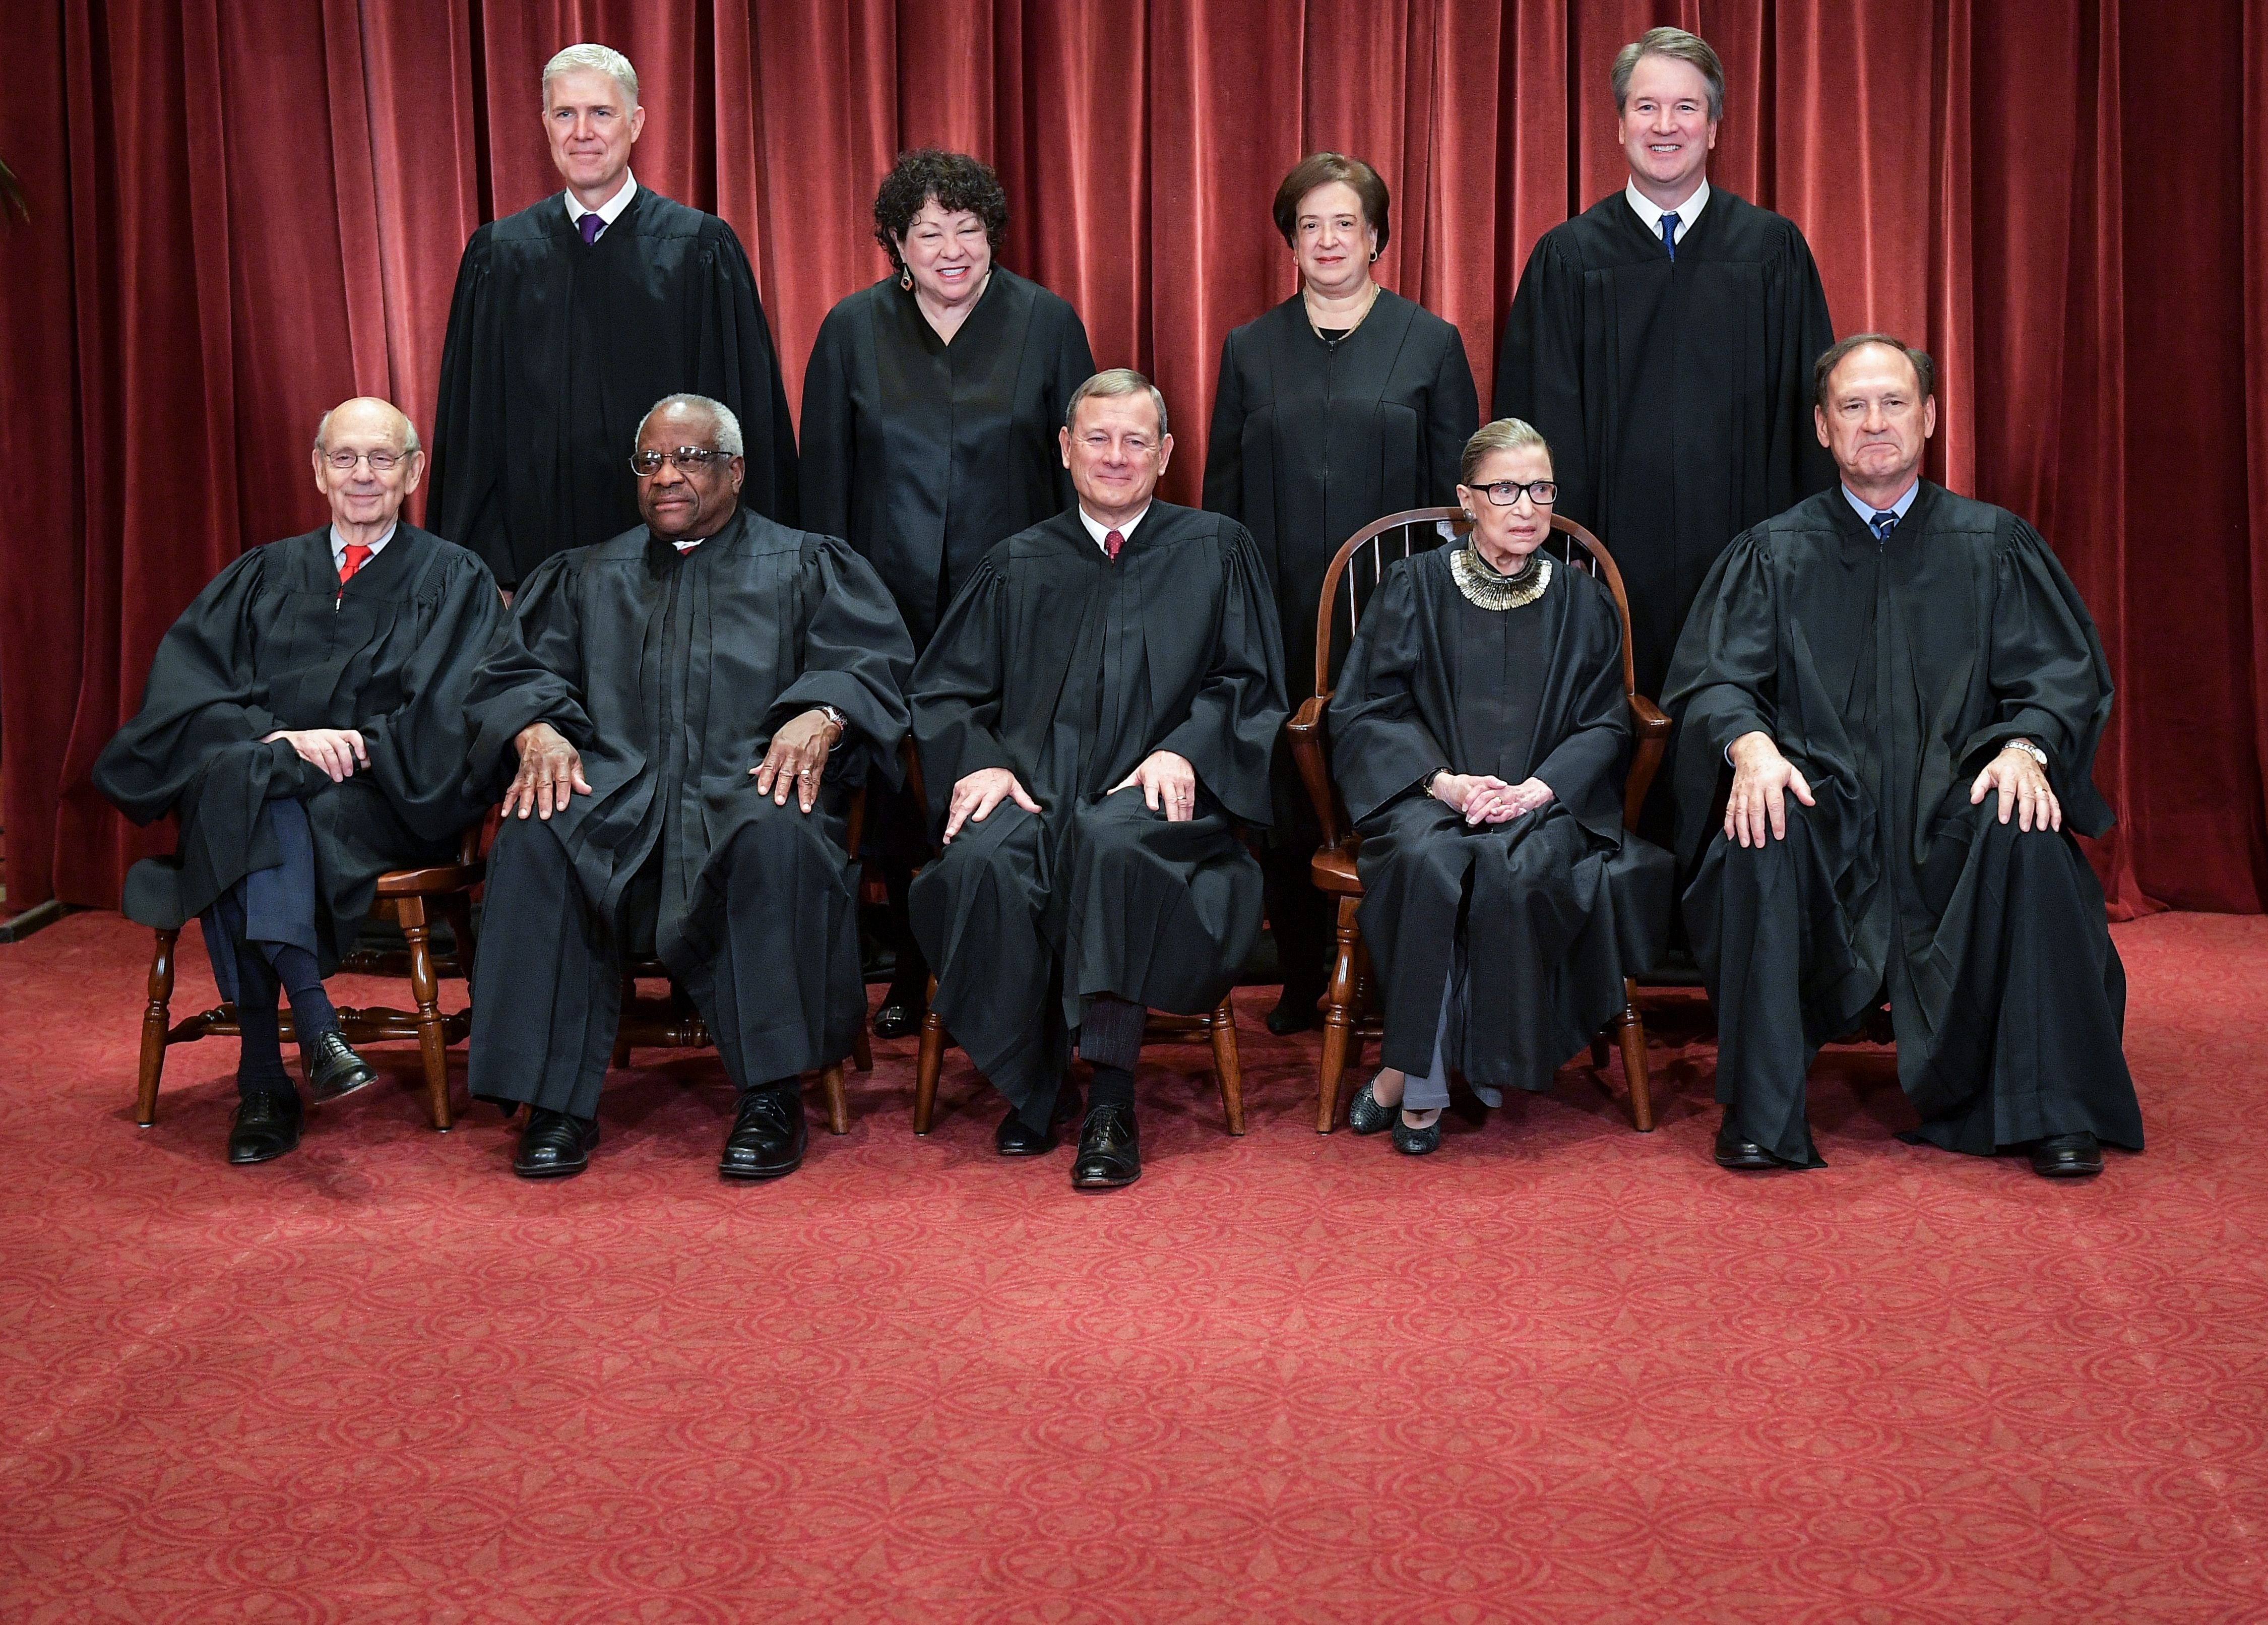 The justices of the Supreme Court pose for their official photo at the Supreme Court in Washington, DC on November 30, 2018. (Mandel Ngan/AFP/Getty Images)